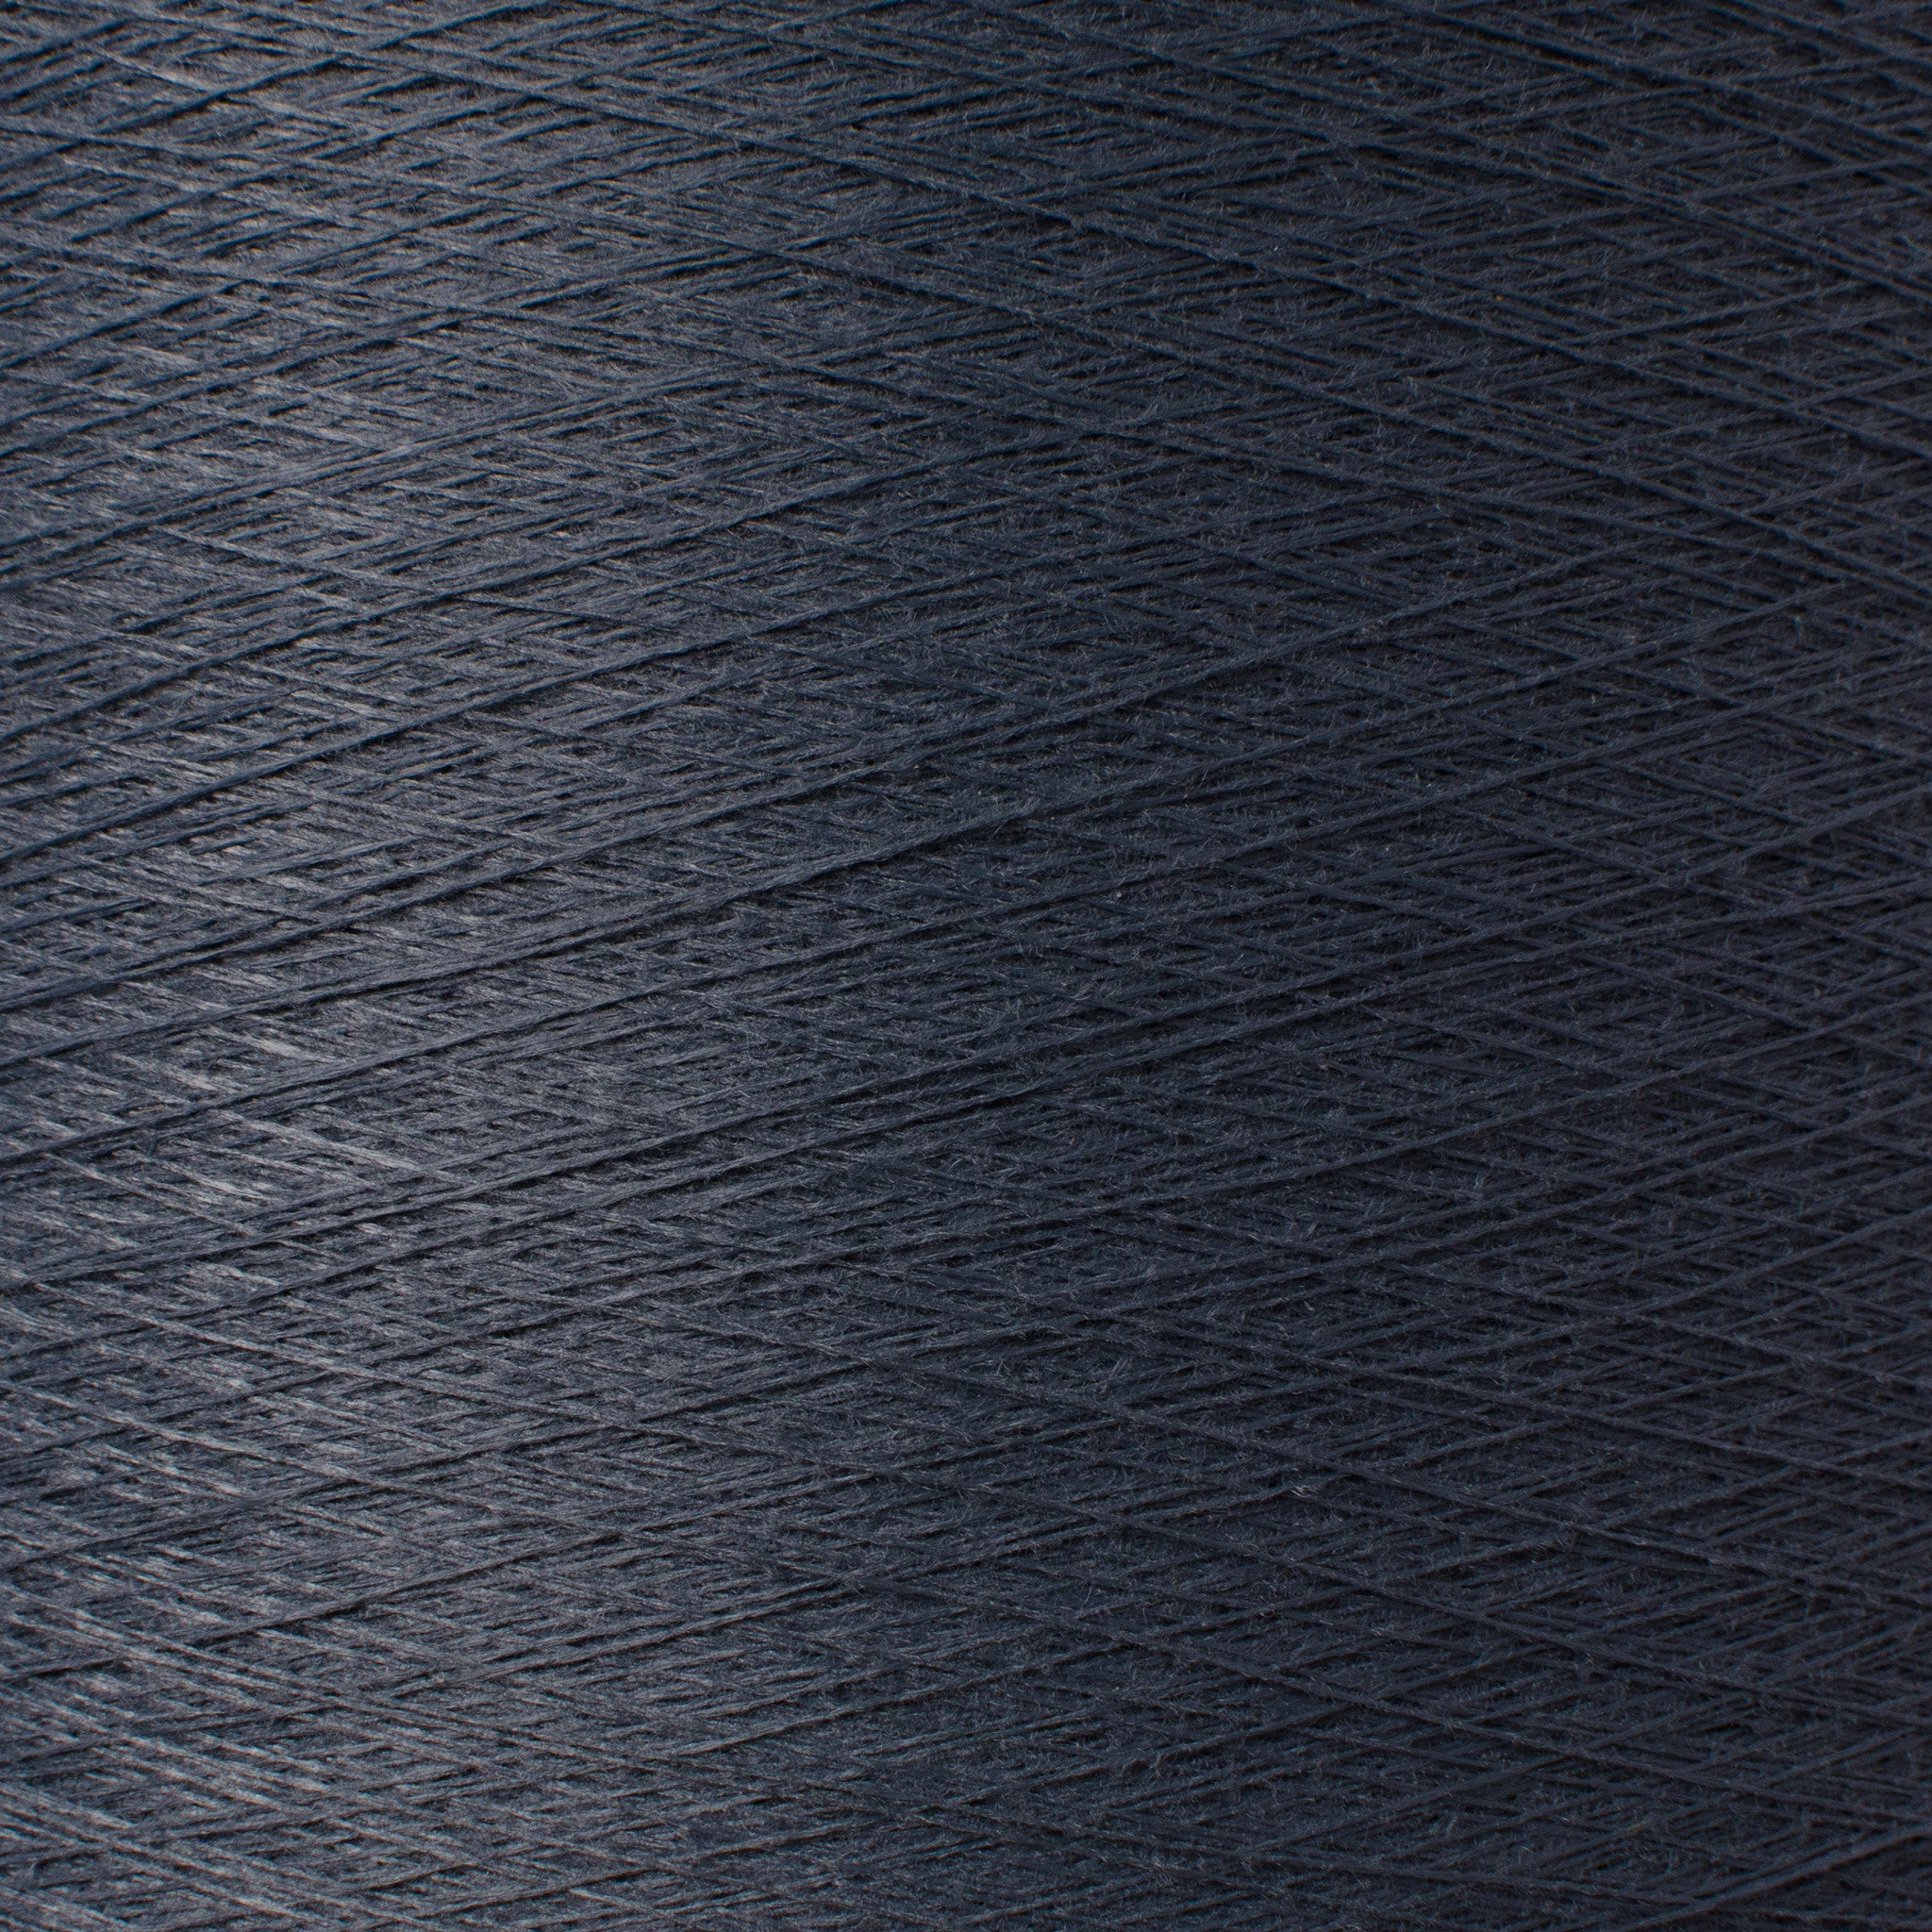 550 Denier 100% Polyester Yarn